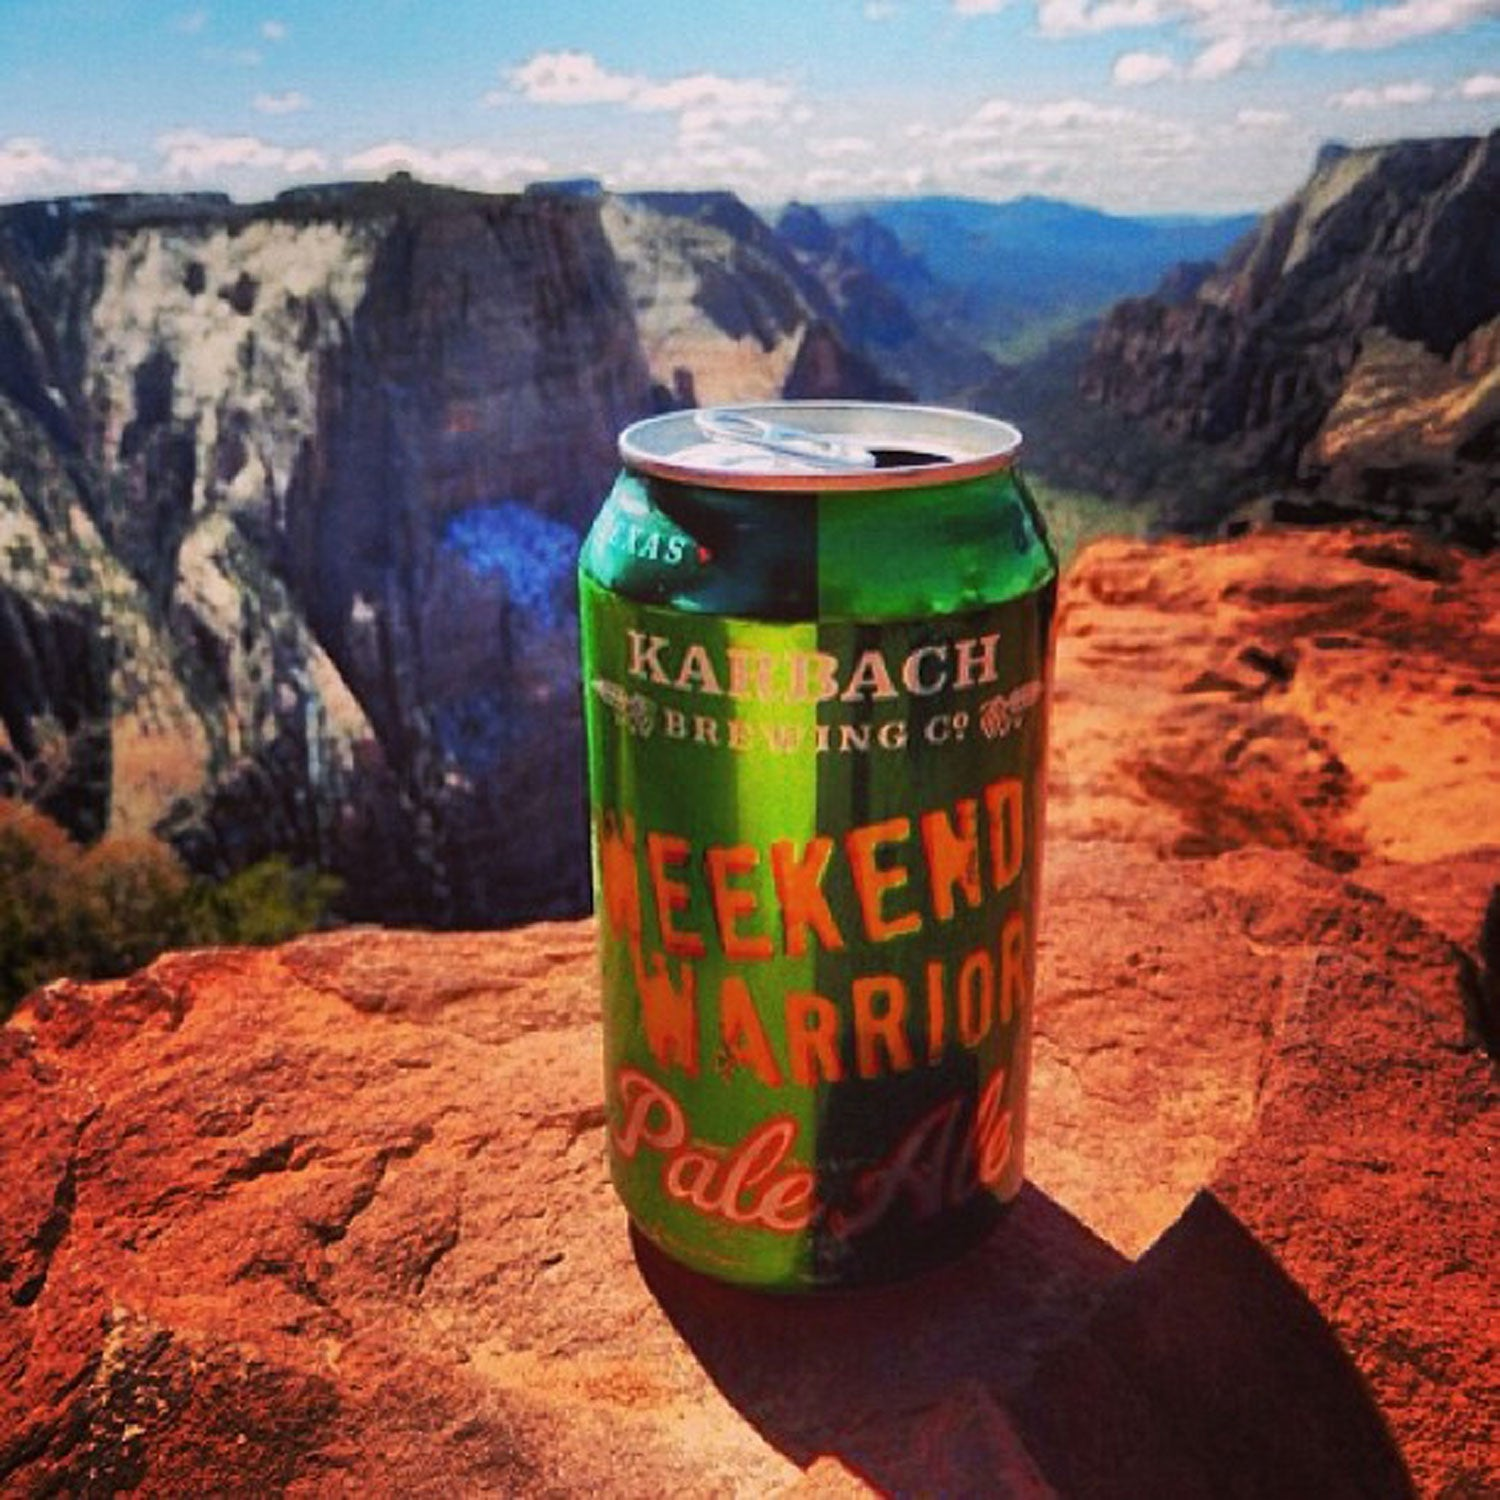 karbach brewing weekend warrior pale ale spring mountain biking outside canned beer